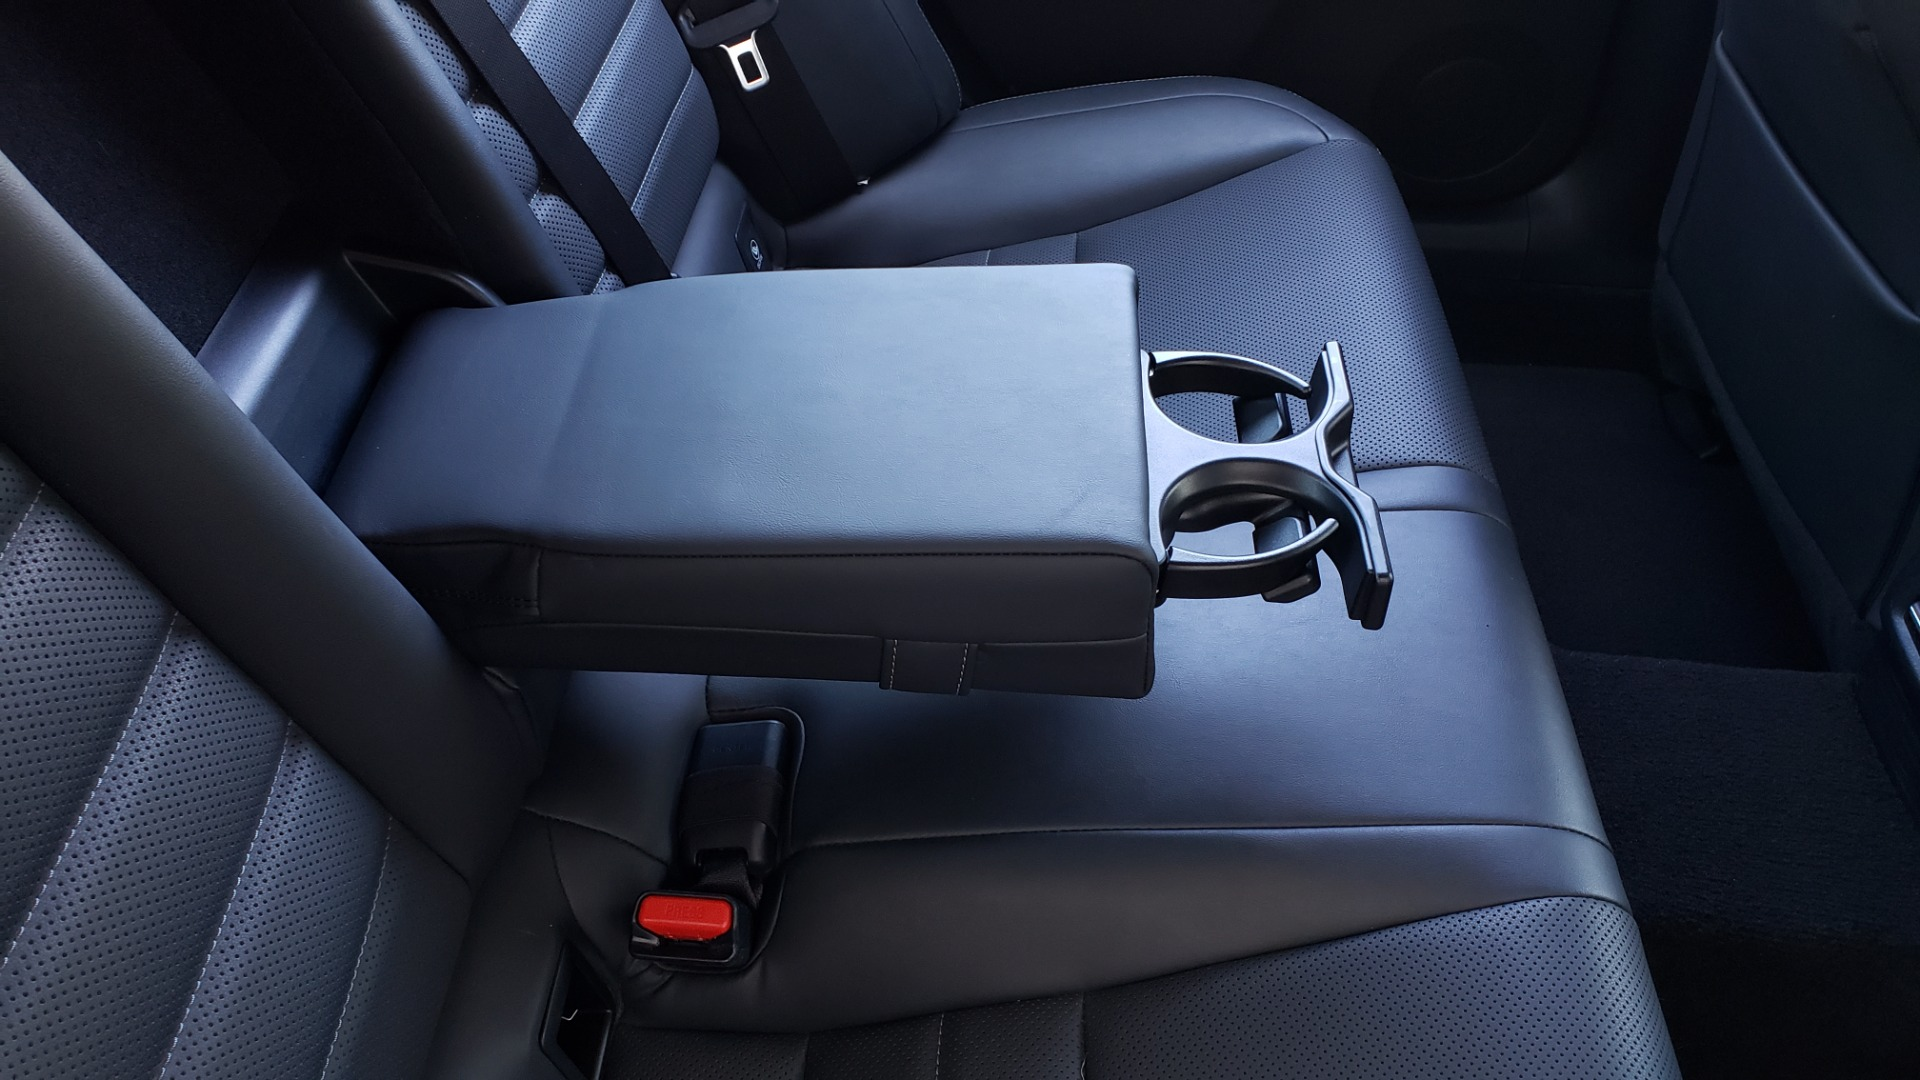 Used 2015 Lexus IS 250 F-SPORT / BSM / SUNROOF / VENT SEATS / REARVIEW for sale Sold at Formula Imports in Charlotte NC 28227 73